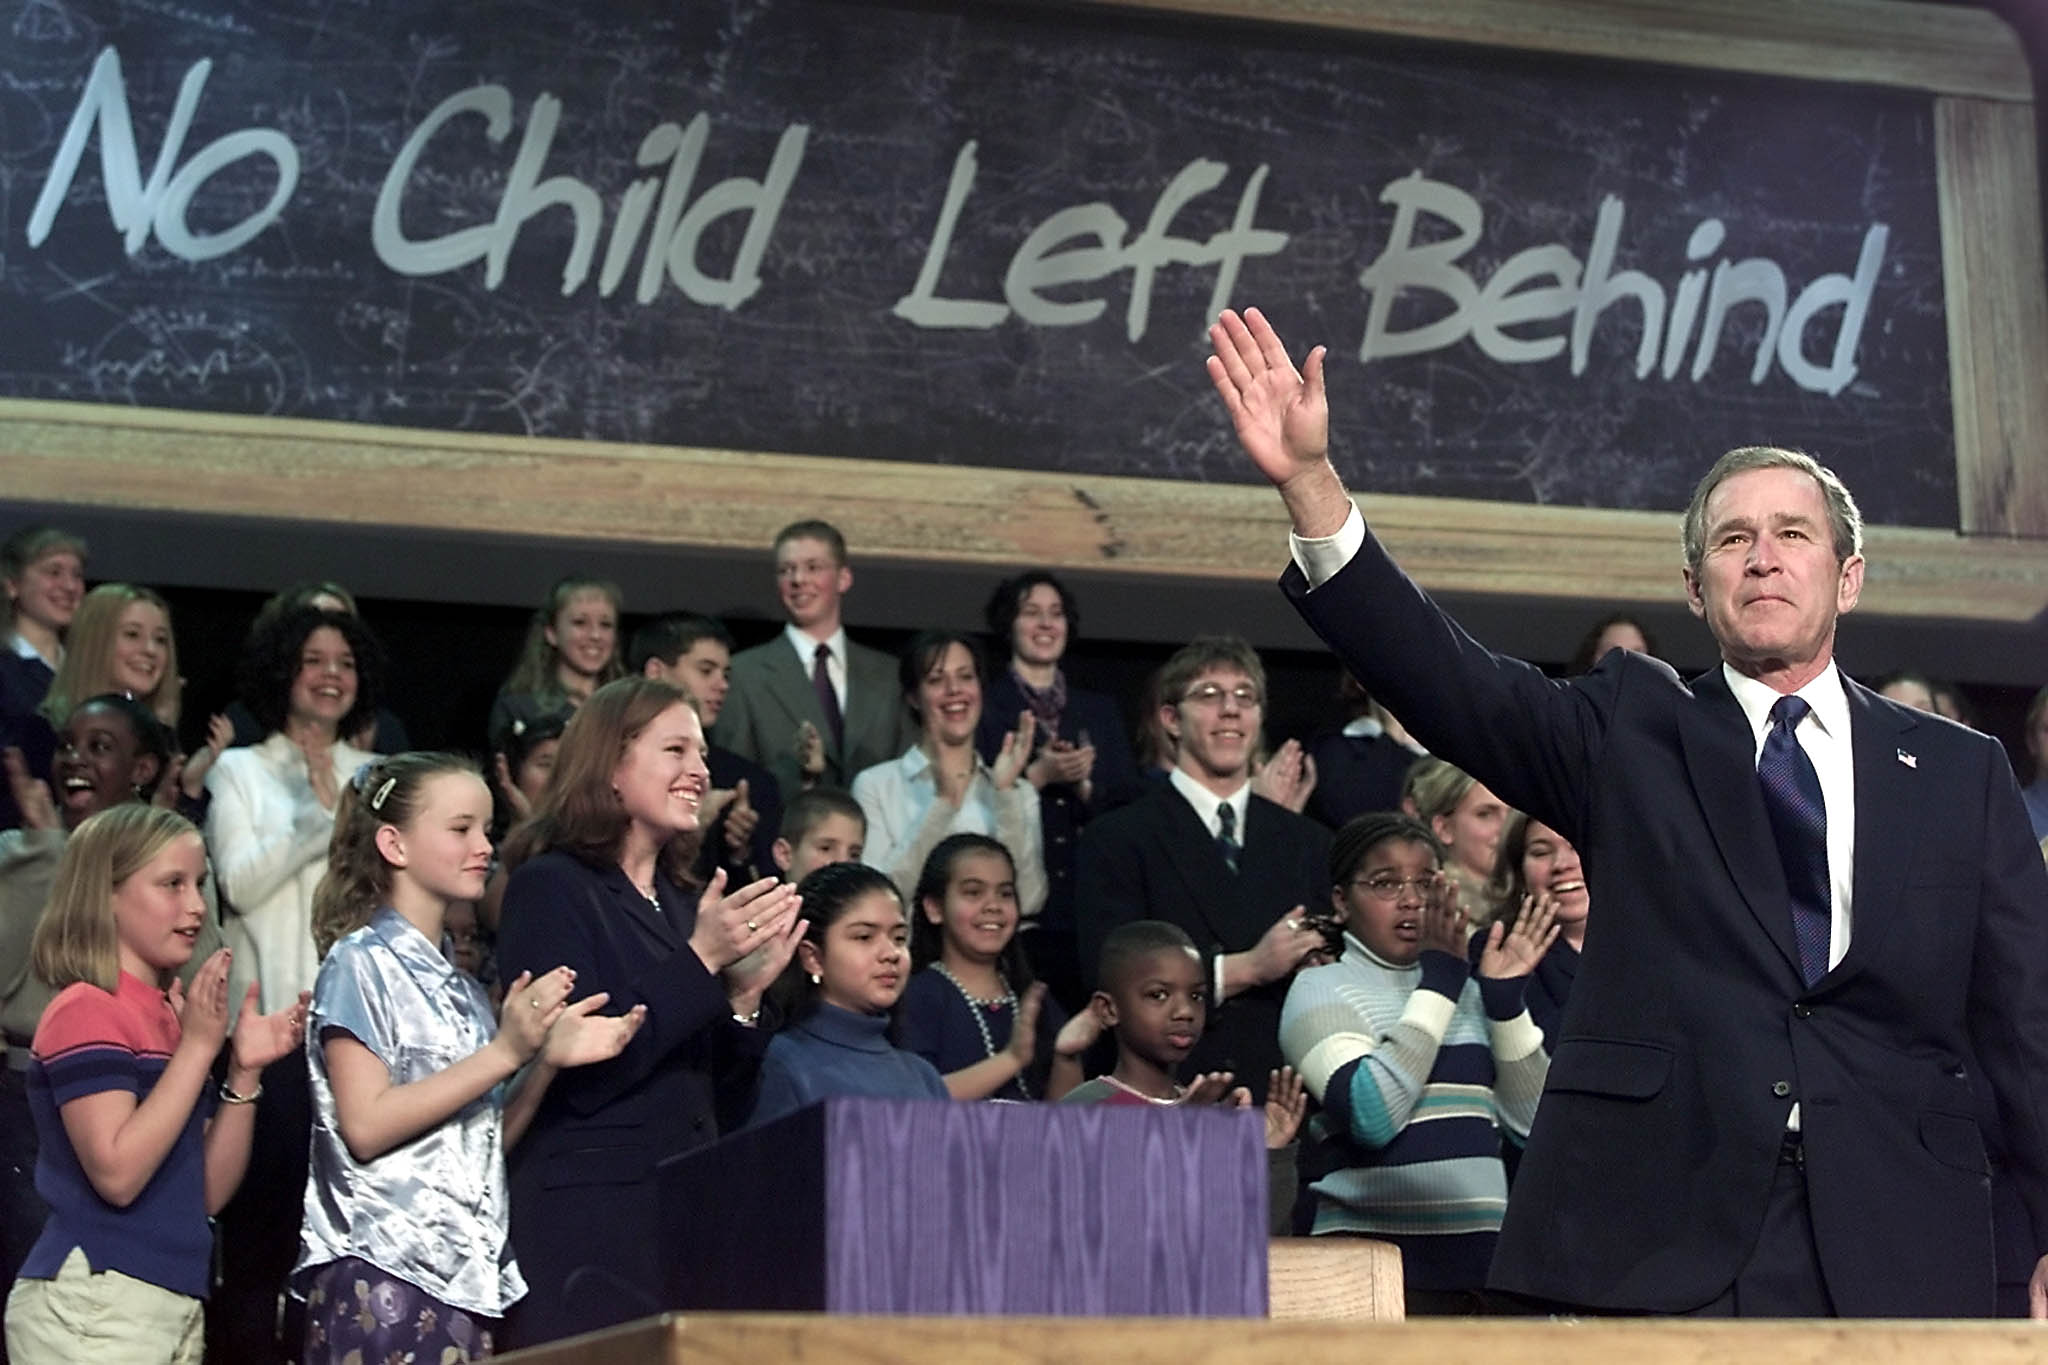 Has the No Child Left Behind Act of 2001 Succeeded?